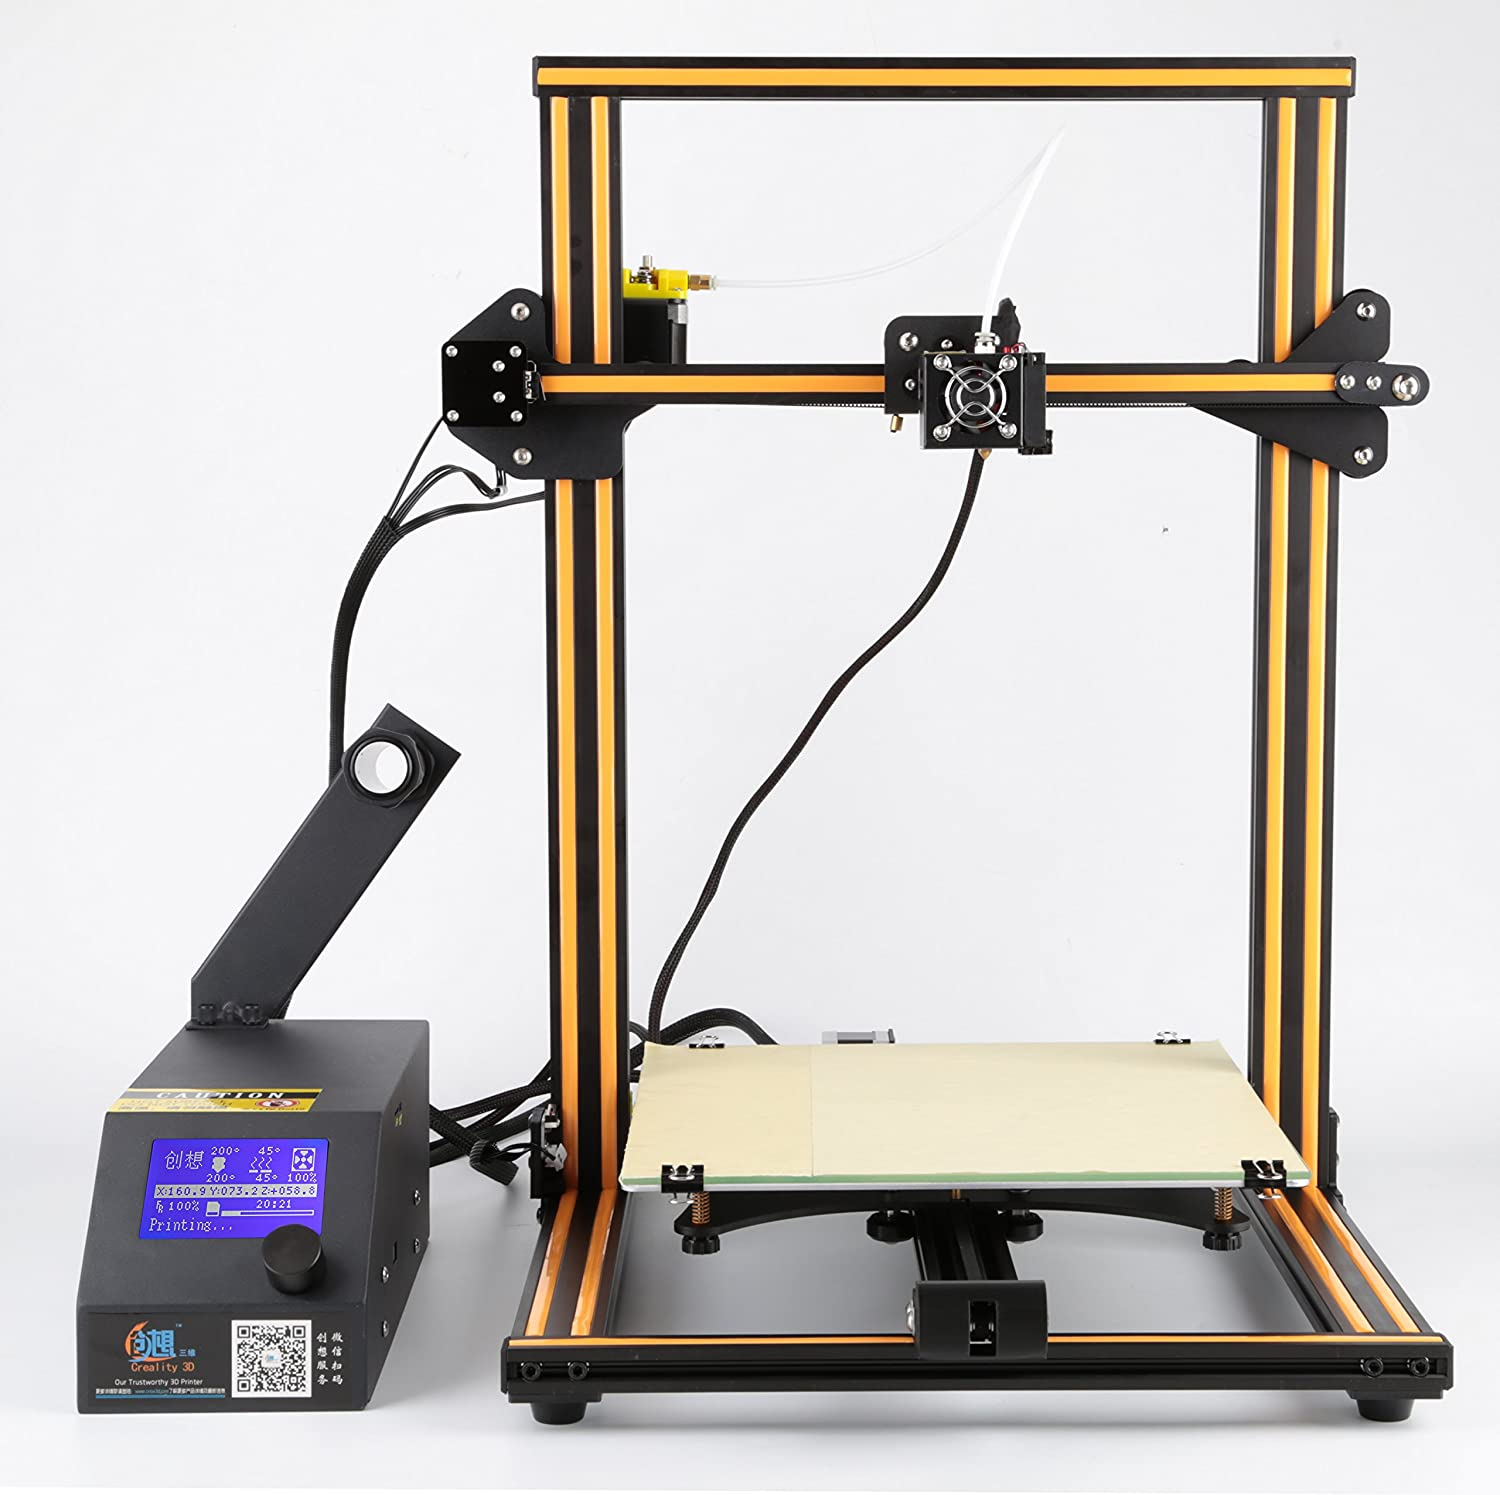 Creality Cr 10 3d Printer Aluminum With Heated Bed High Camt Launching Firstever For Printed Circuit Board Precisio Free Testing Filament Tool Set Industrial Scientific